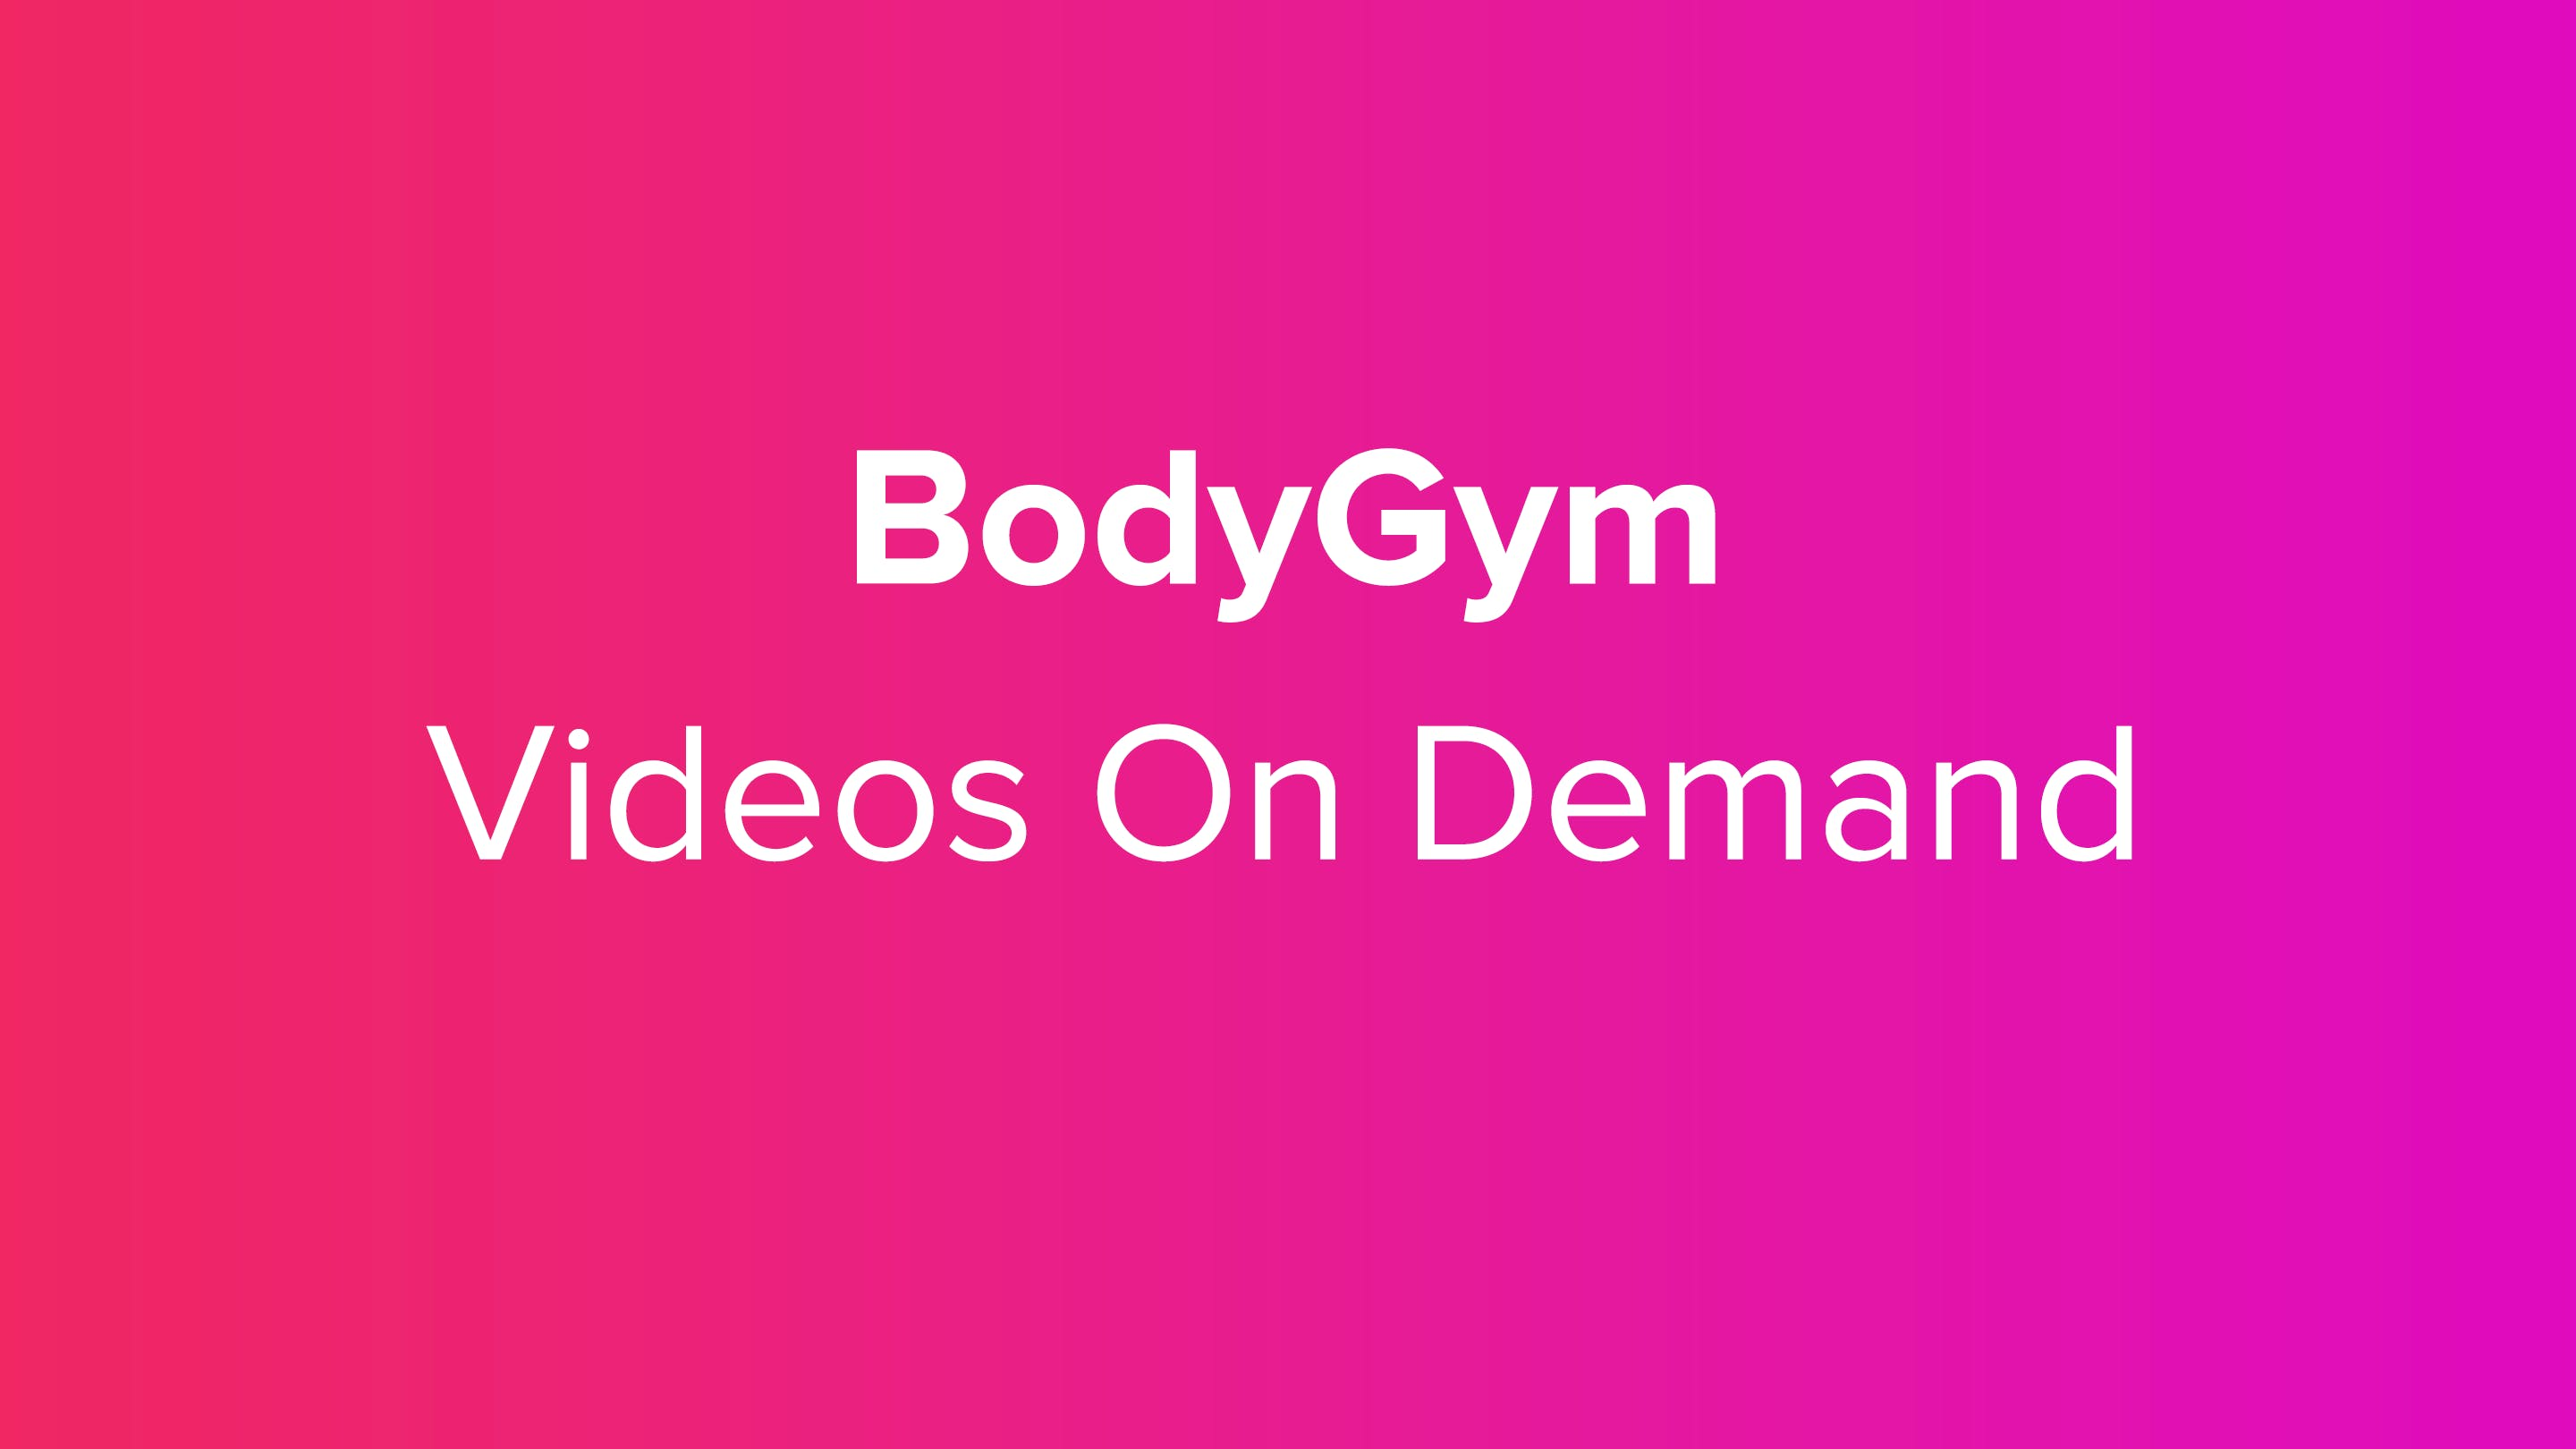 BodyGym Videos On Demand!